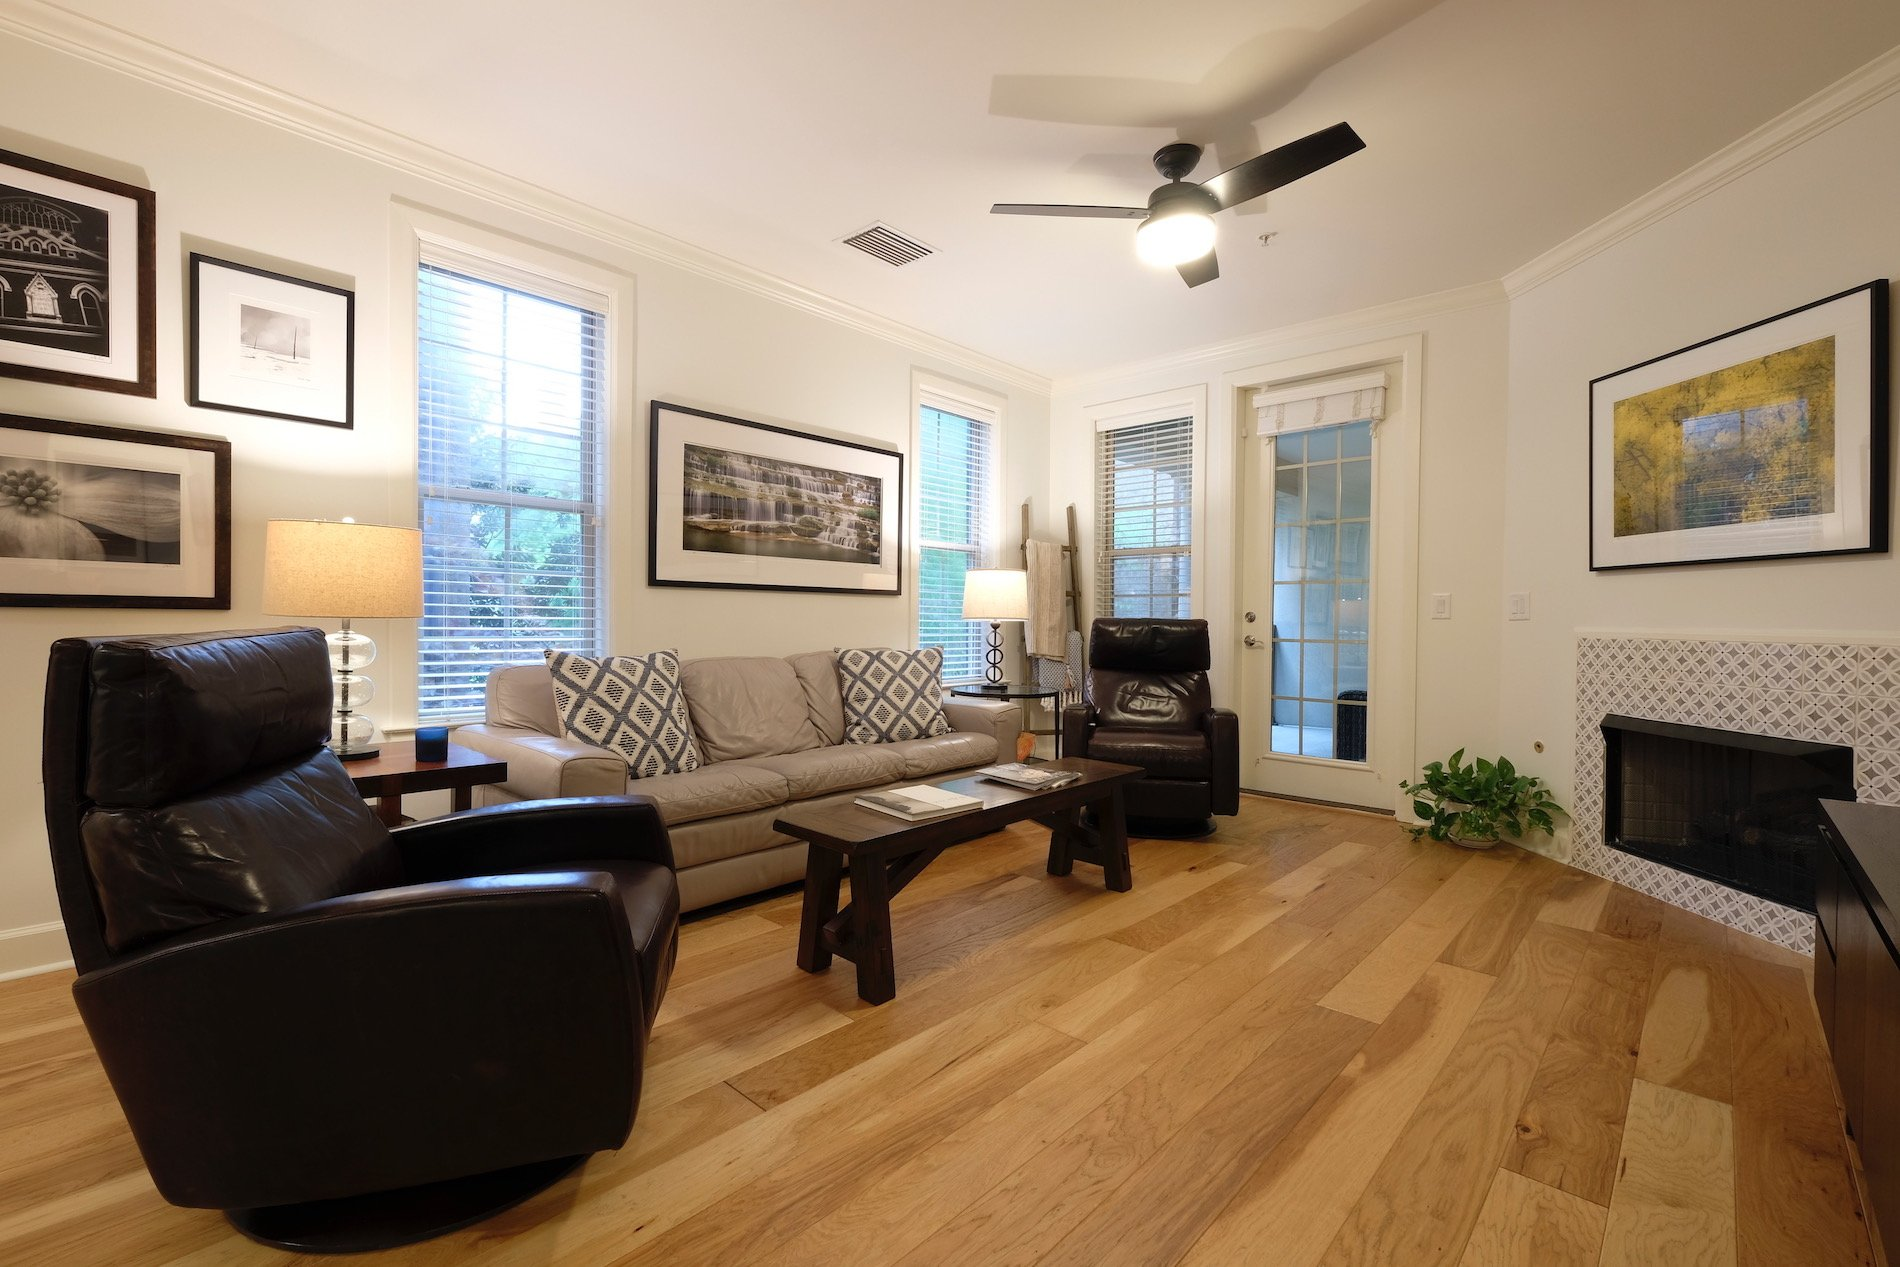 Sherwin Williams white paint, natural hickory hardwood floors, ceiling fan, painted tile fireplace